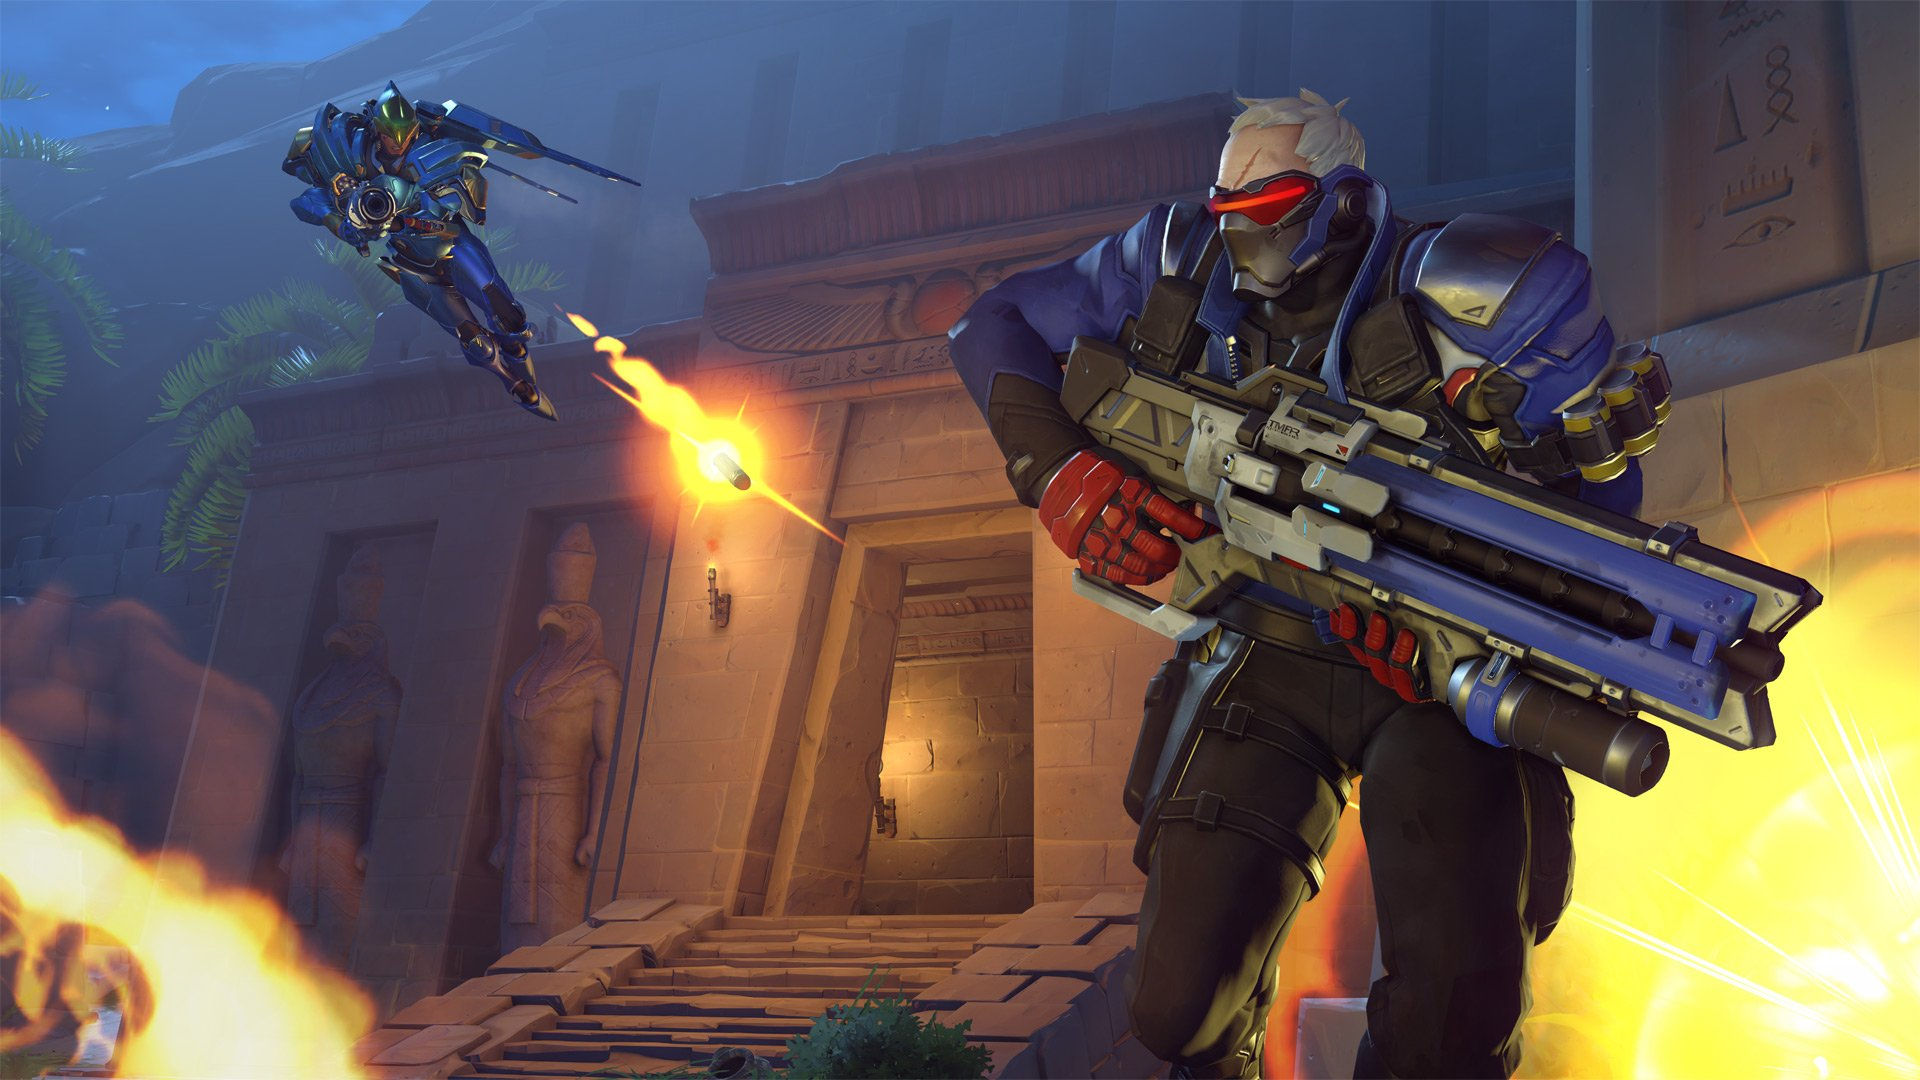 Blizzard Confirms Overwatch Will Get 4K Enhancements for the Xbox One X